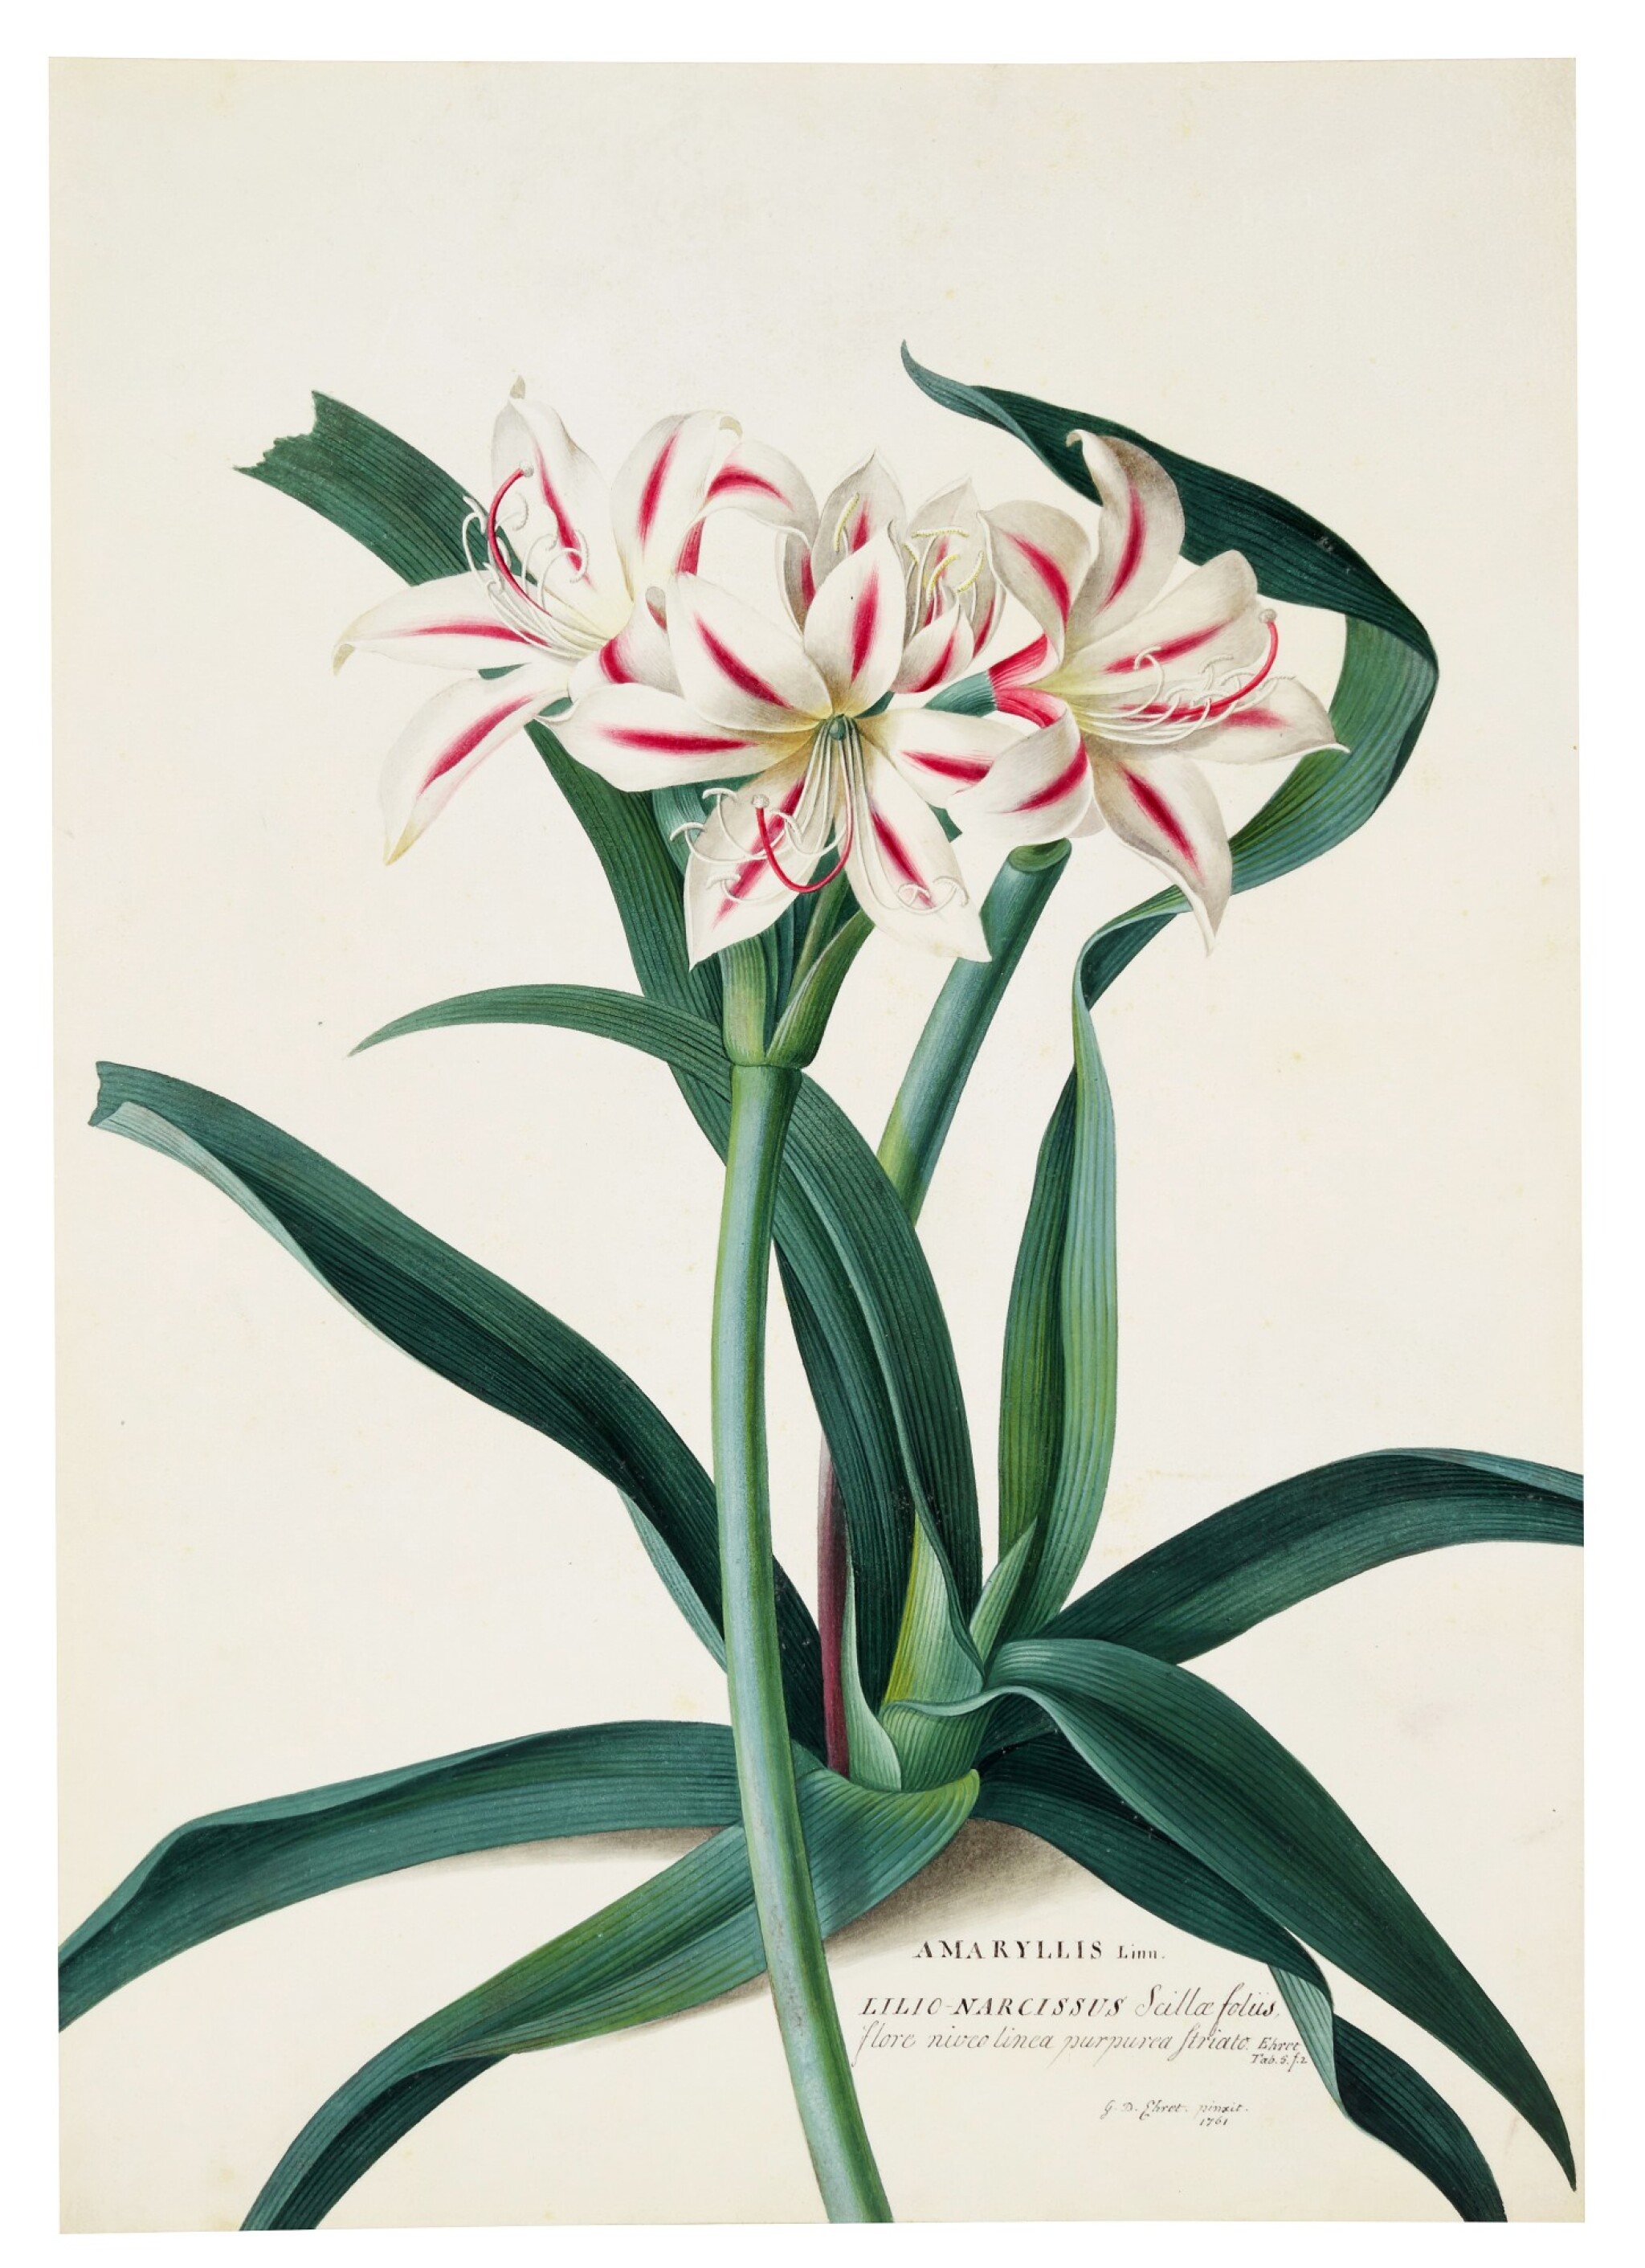 View full screen - View 1 of Lot 59. The Amaryllis.